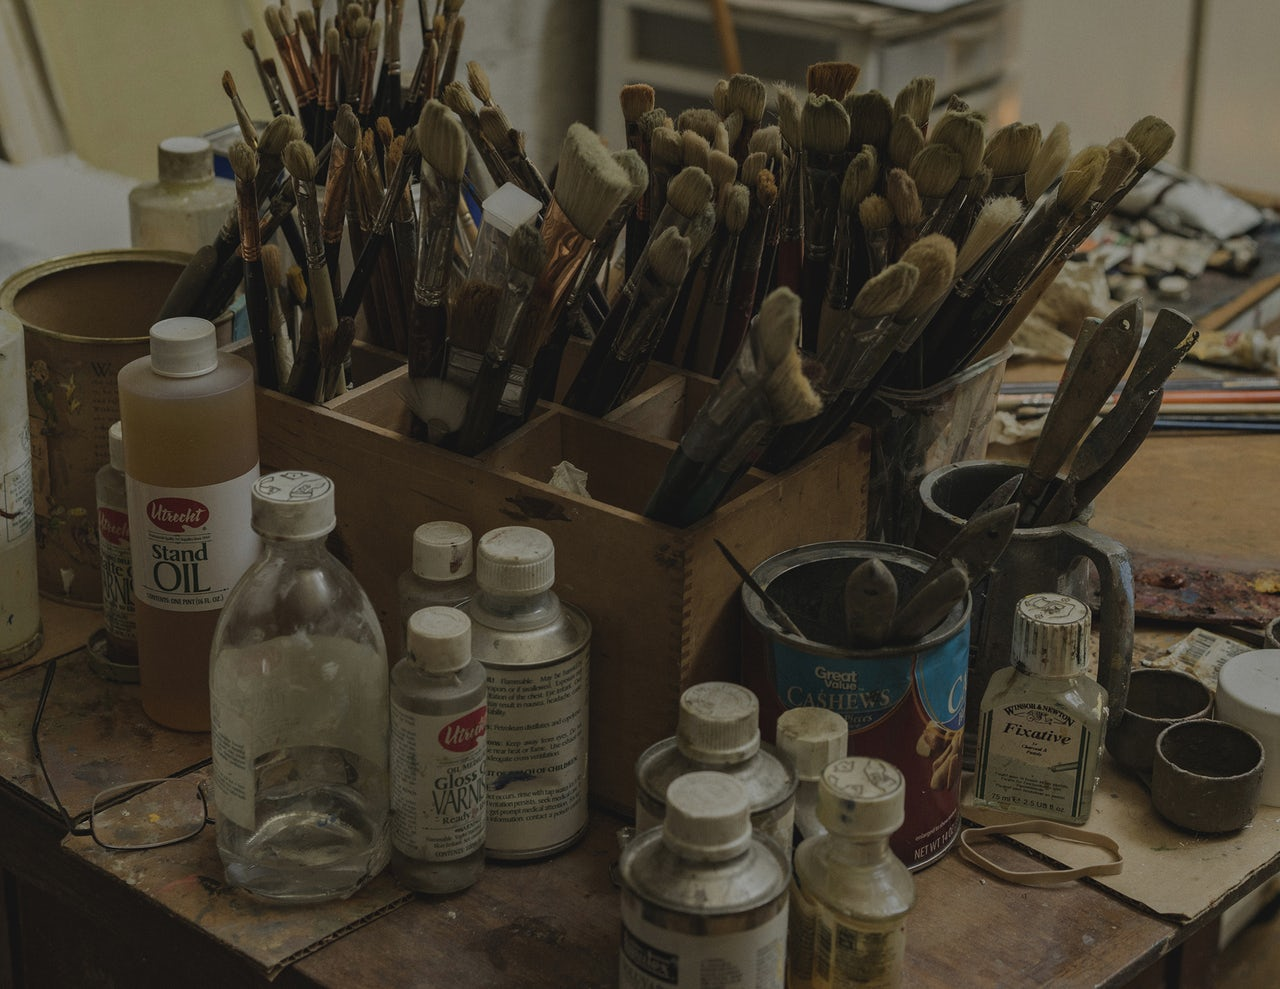 Paintbrushes in Burton Silverman's studio.